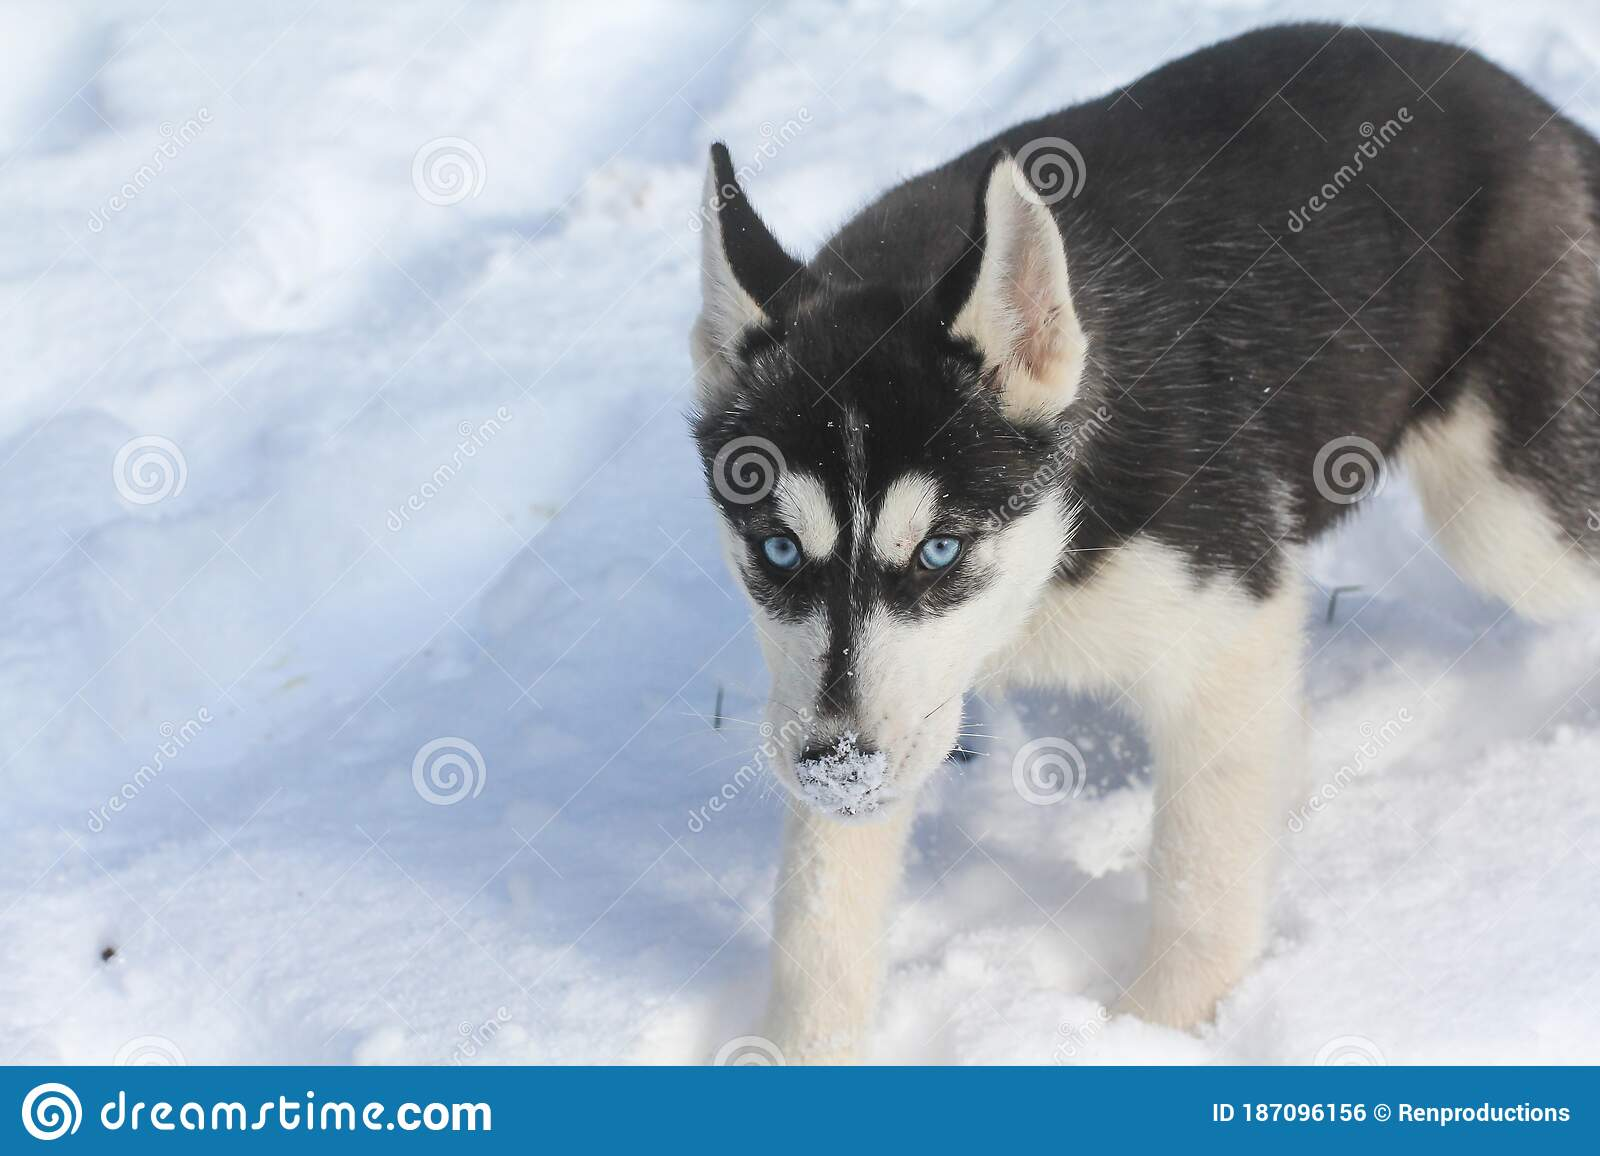 Siberian Husky Puppy In Black And White With Blue Eyes Stock Photo Image Of Cute Black 187096156